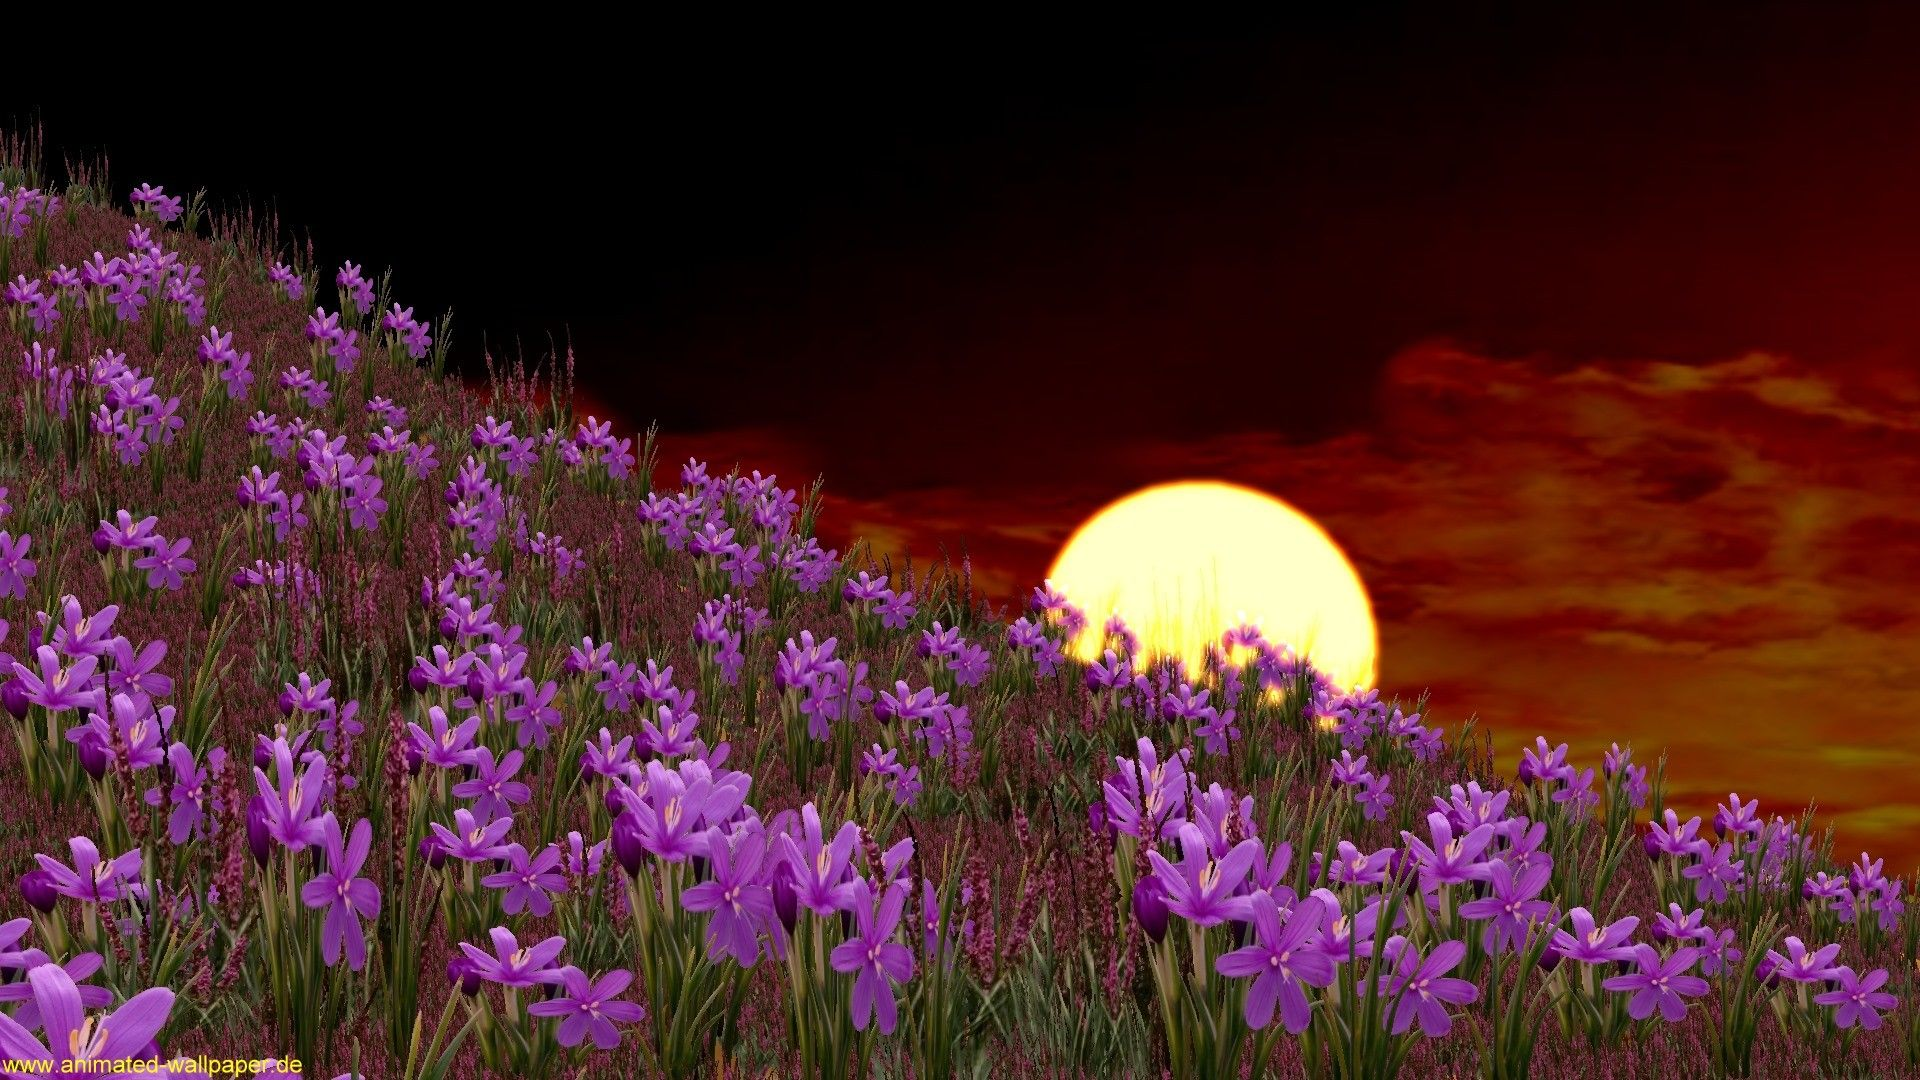 Free Download Animated Desktop Wallpaper Free Download Animated Nature Wallpapers Desktop Flower Desktop Wallpaper Spring Wallpaper Free Spring Wallpaper